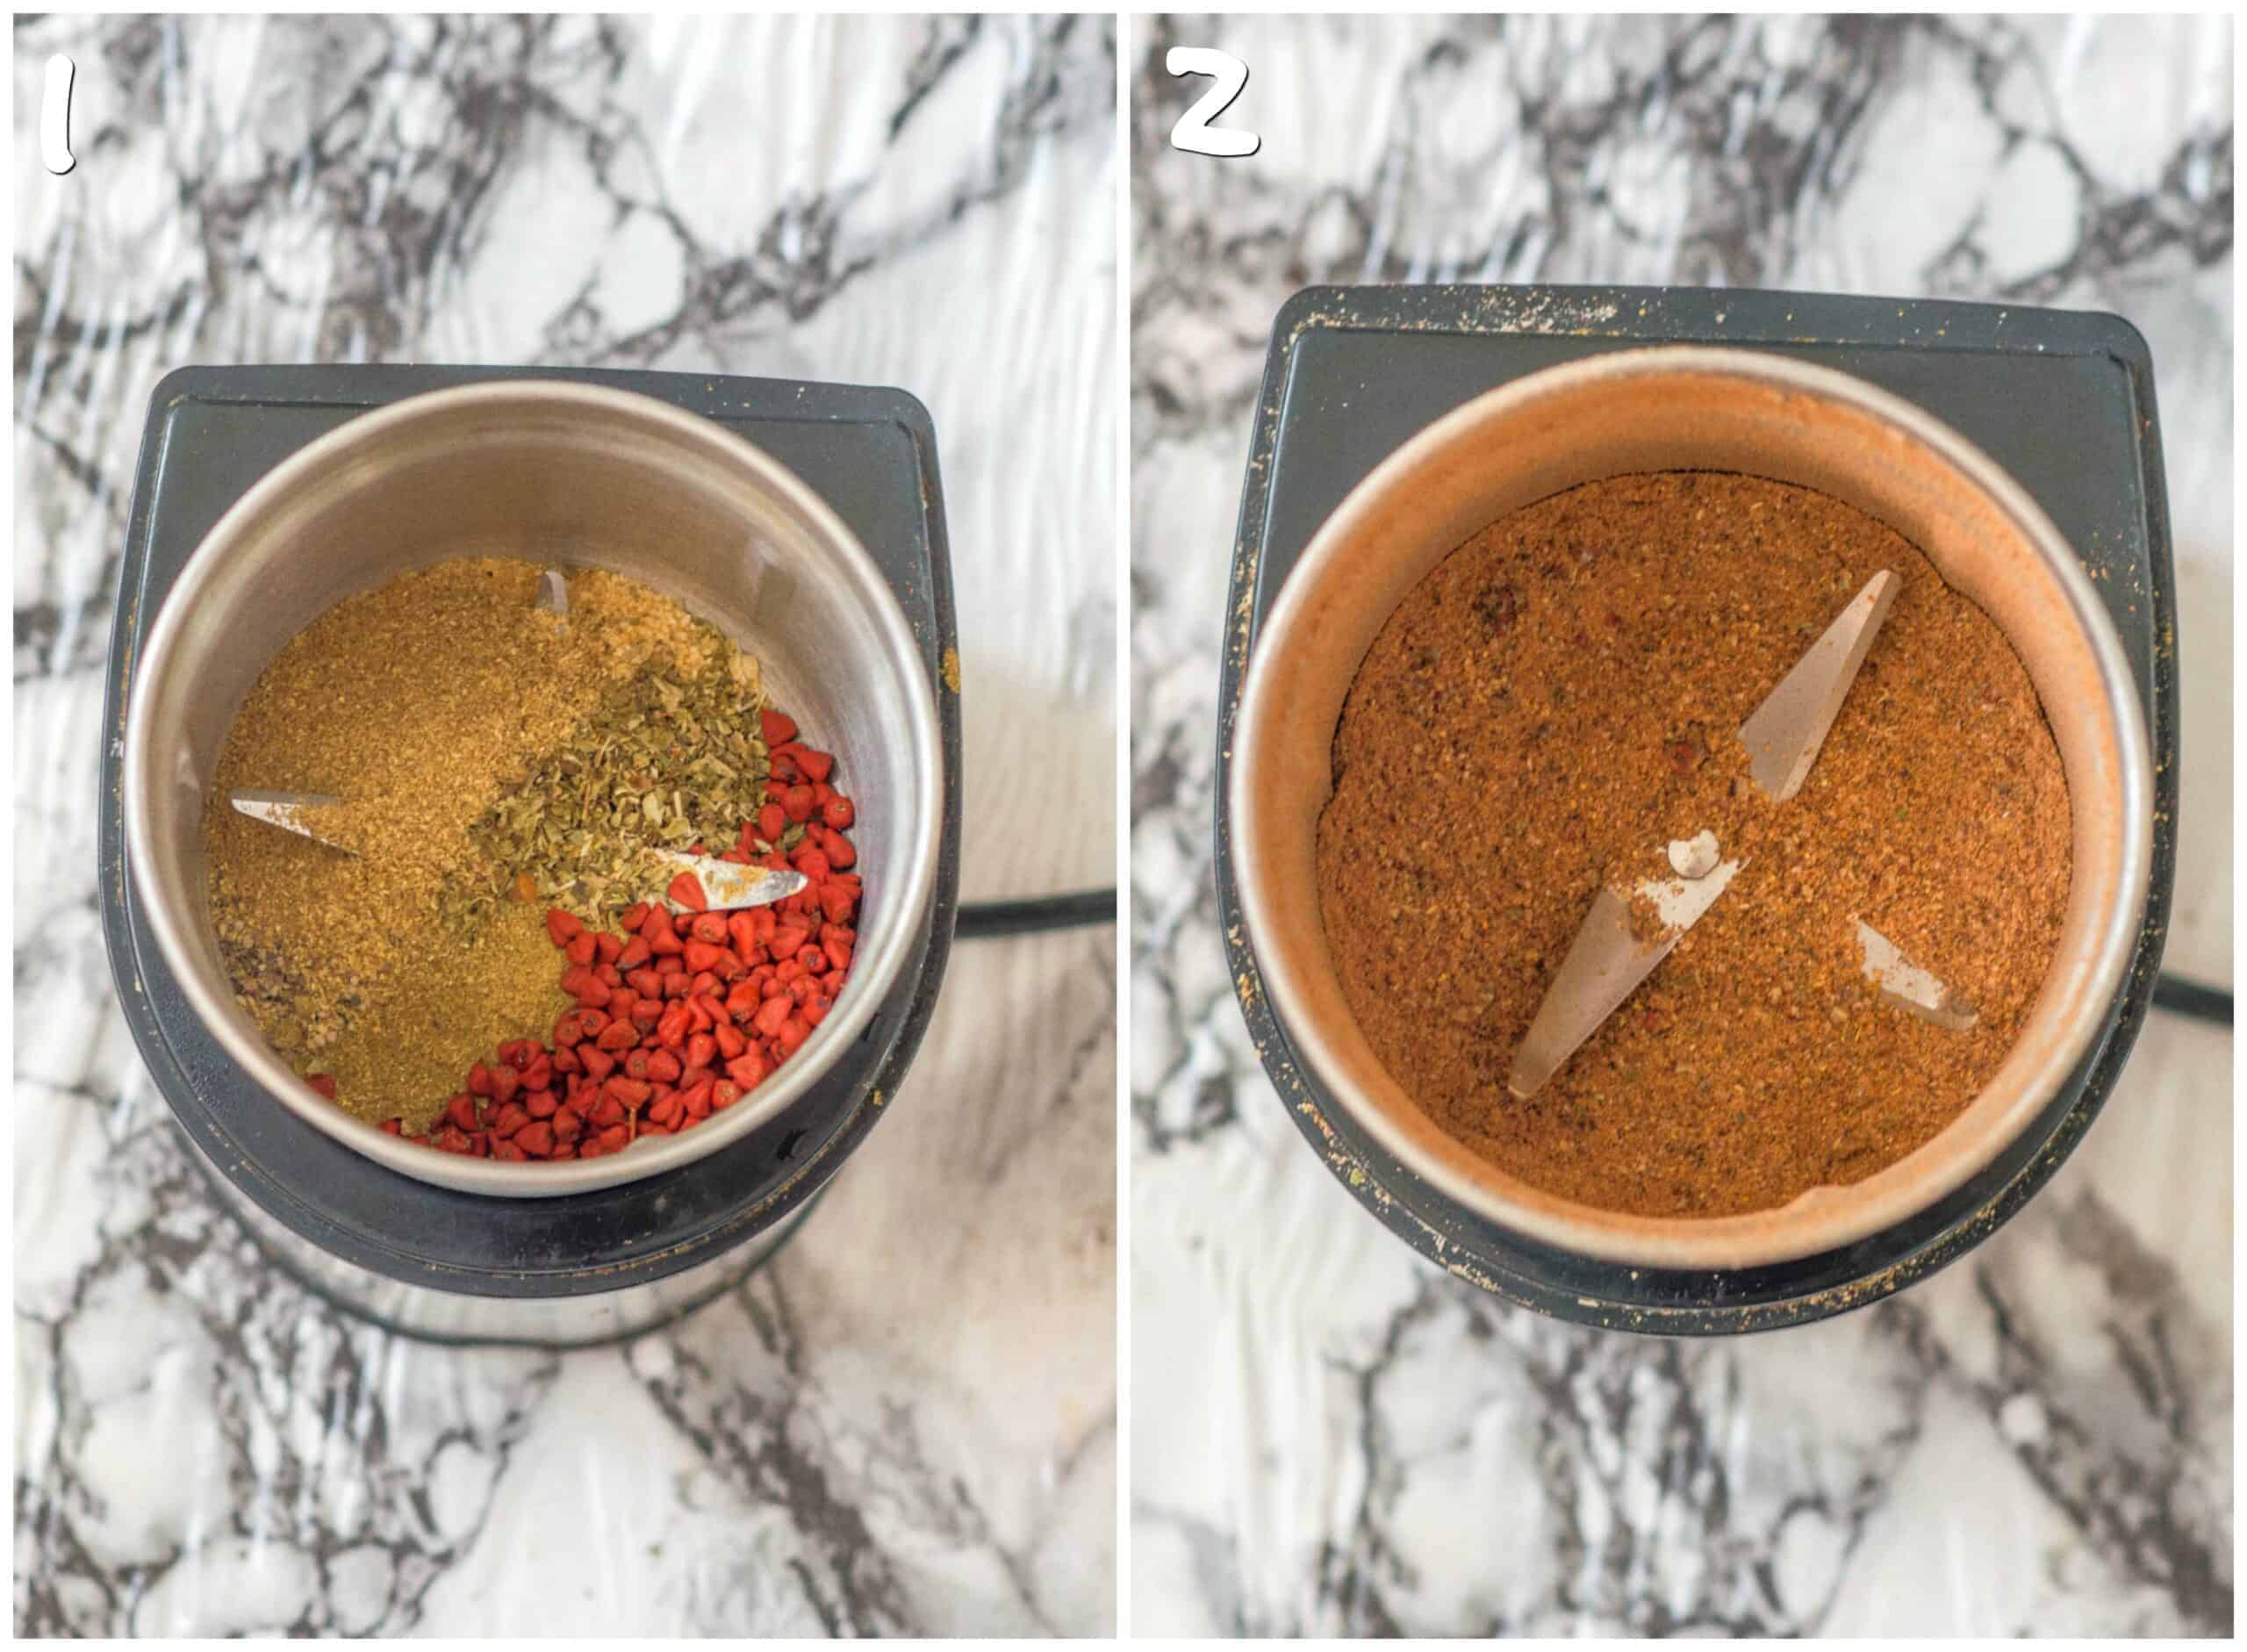 steps 1- 2 blending the seasoning